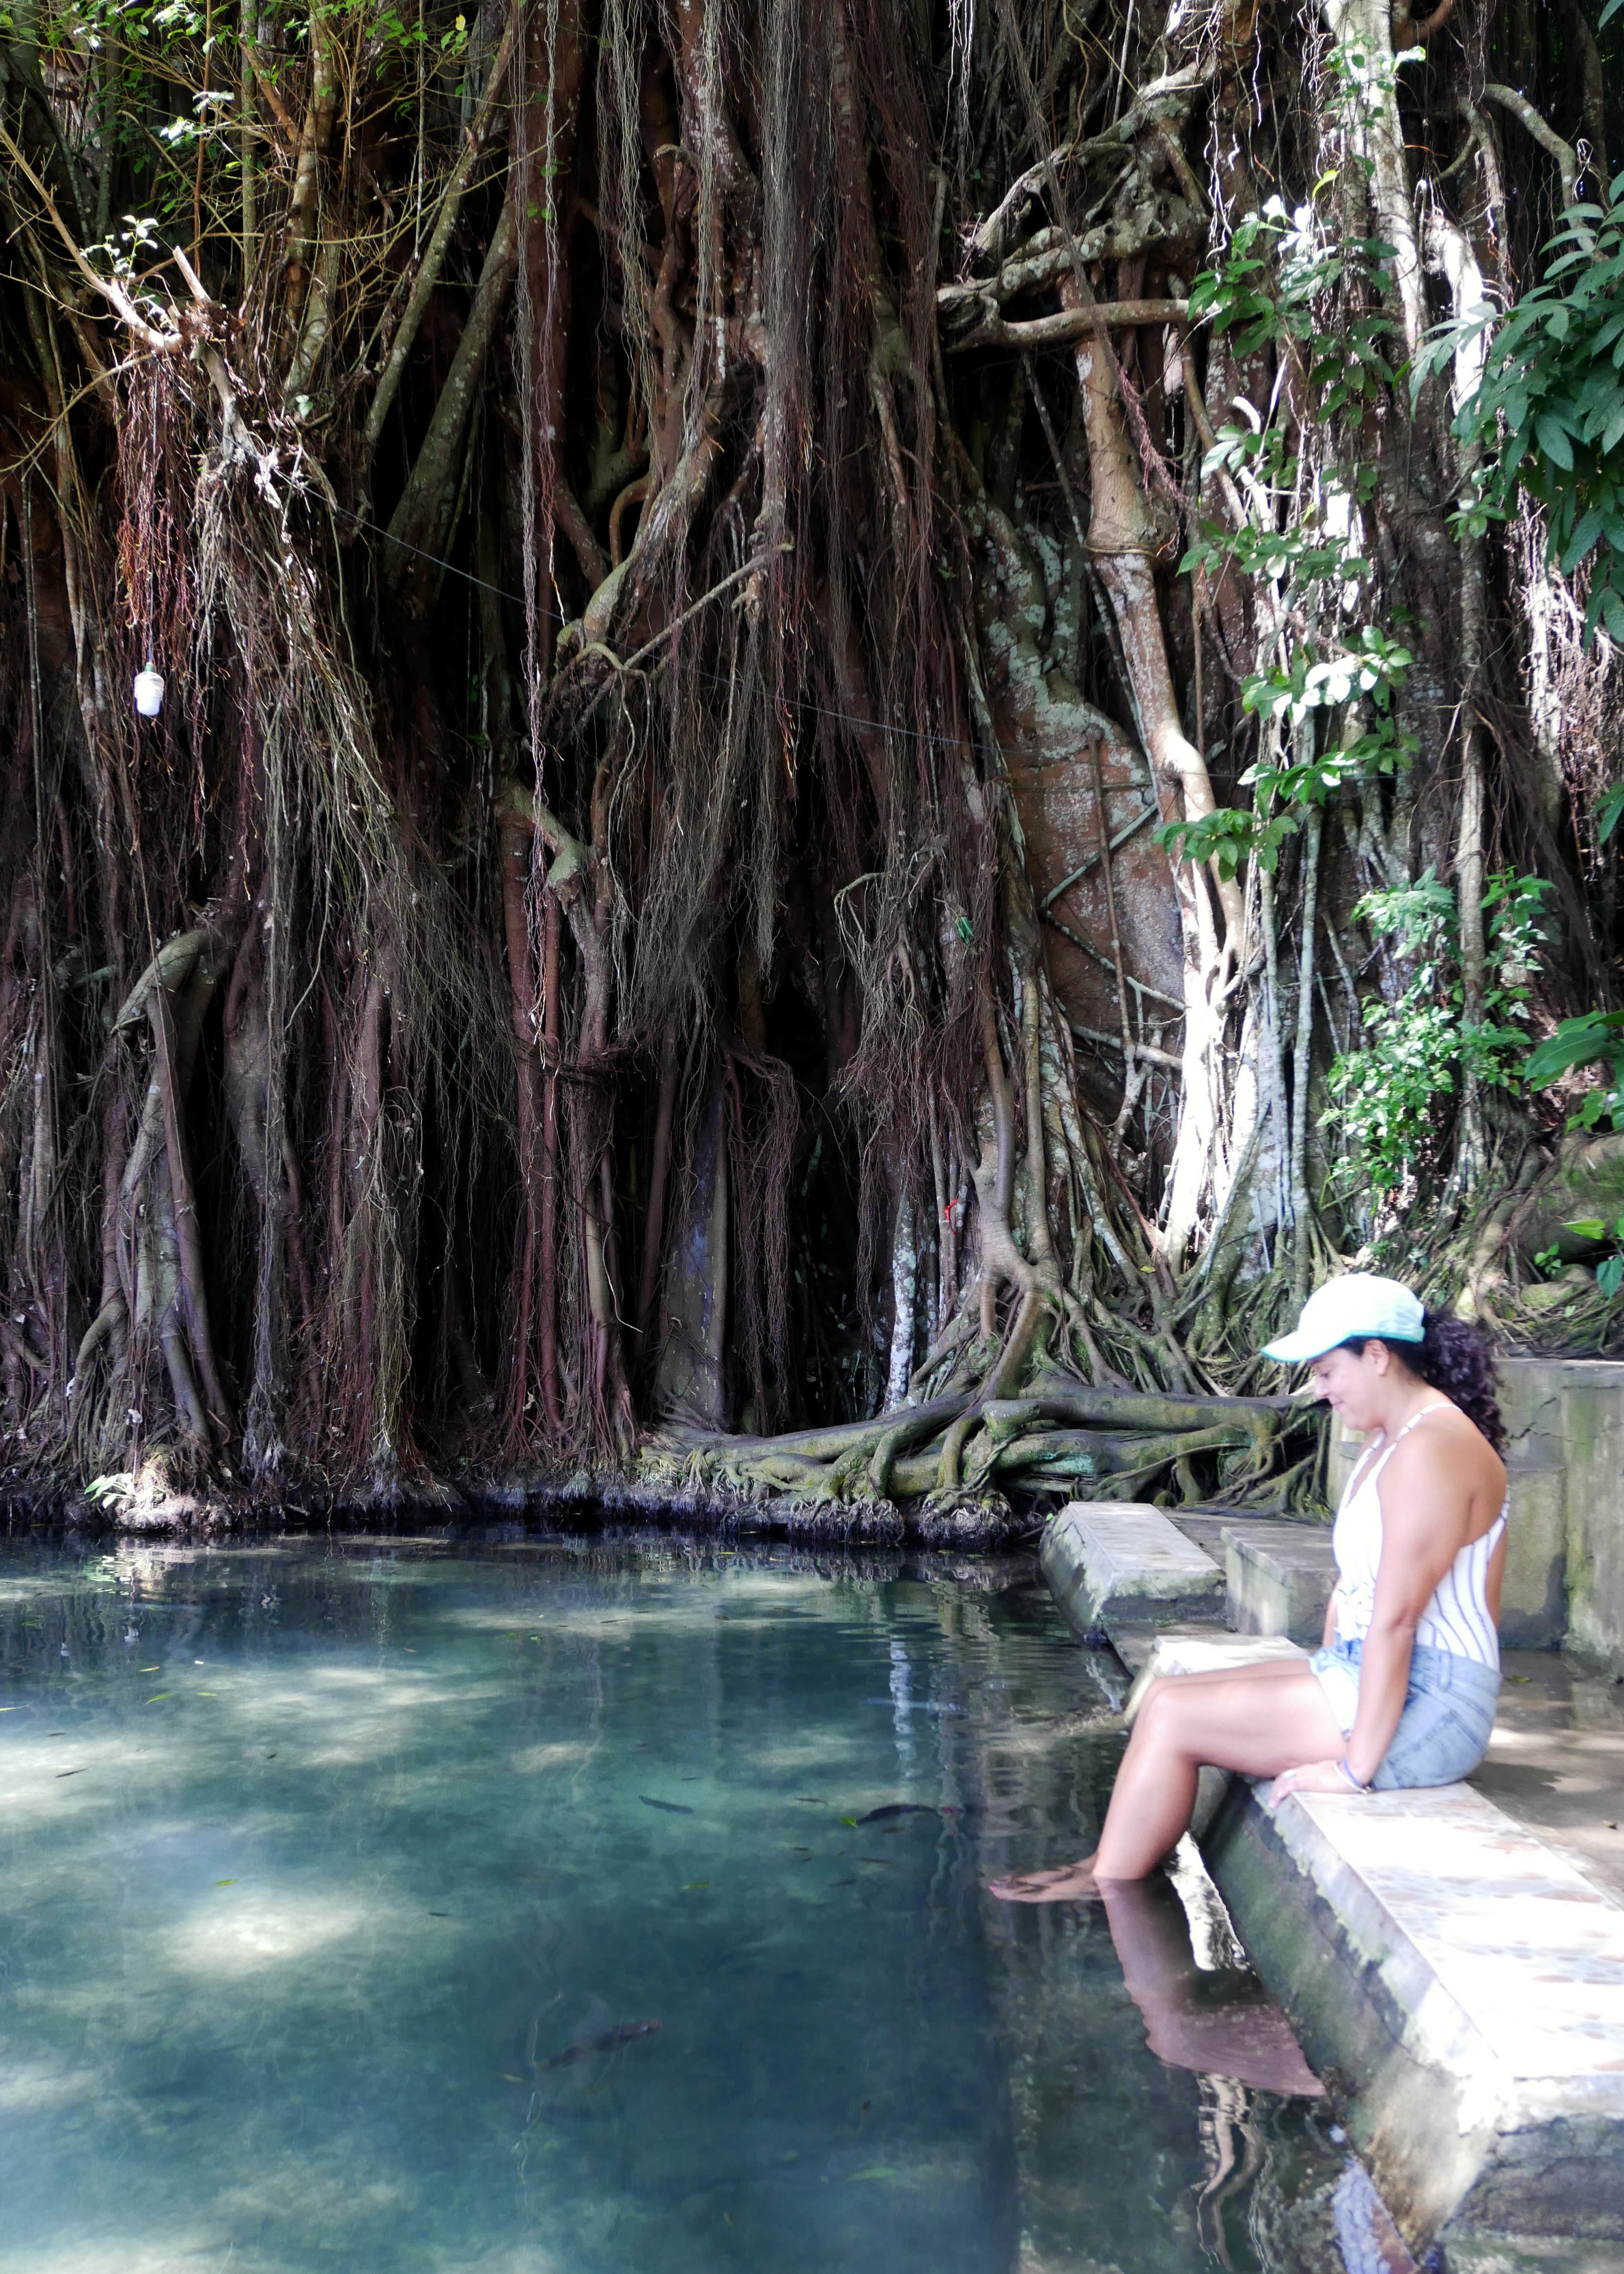 Getting a natural pedicure at the Ancient Balete / Bayan tree